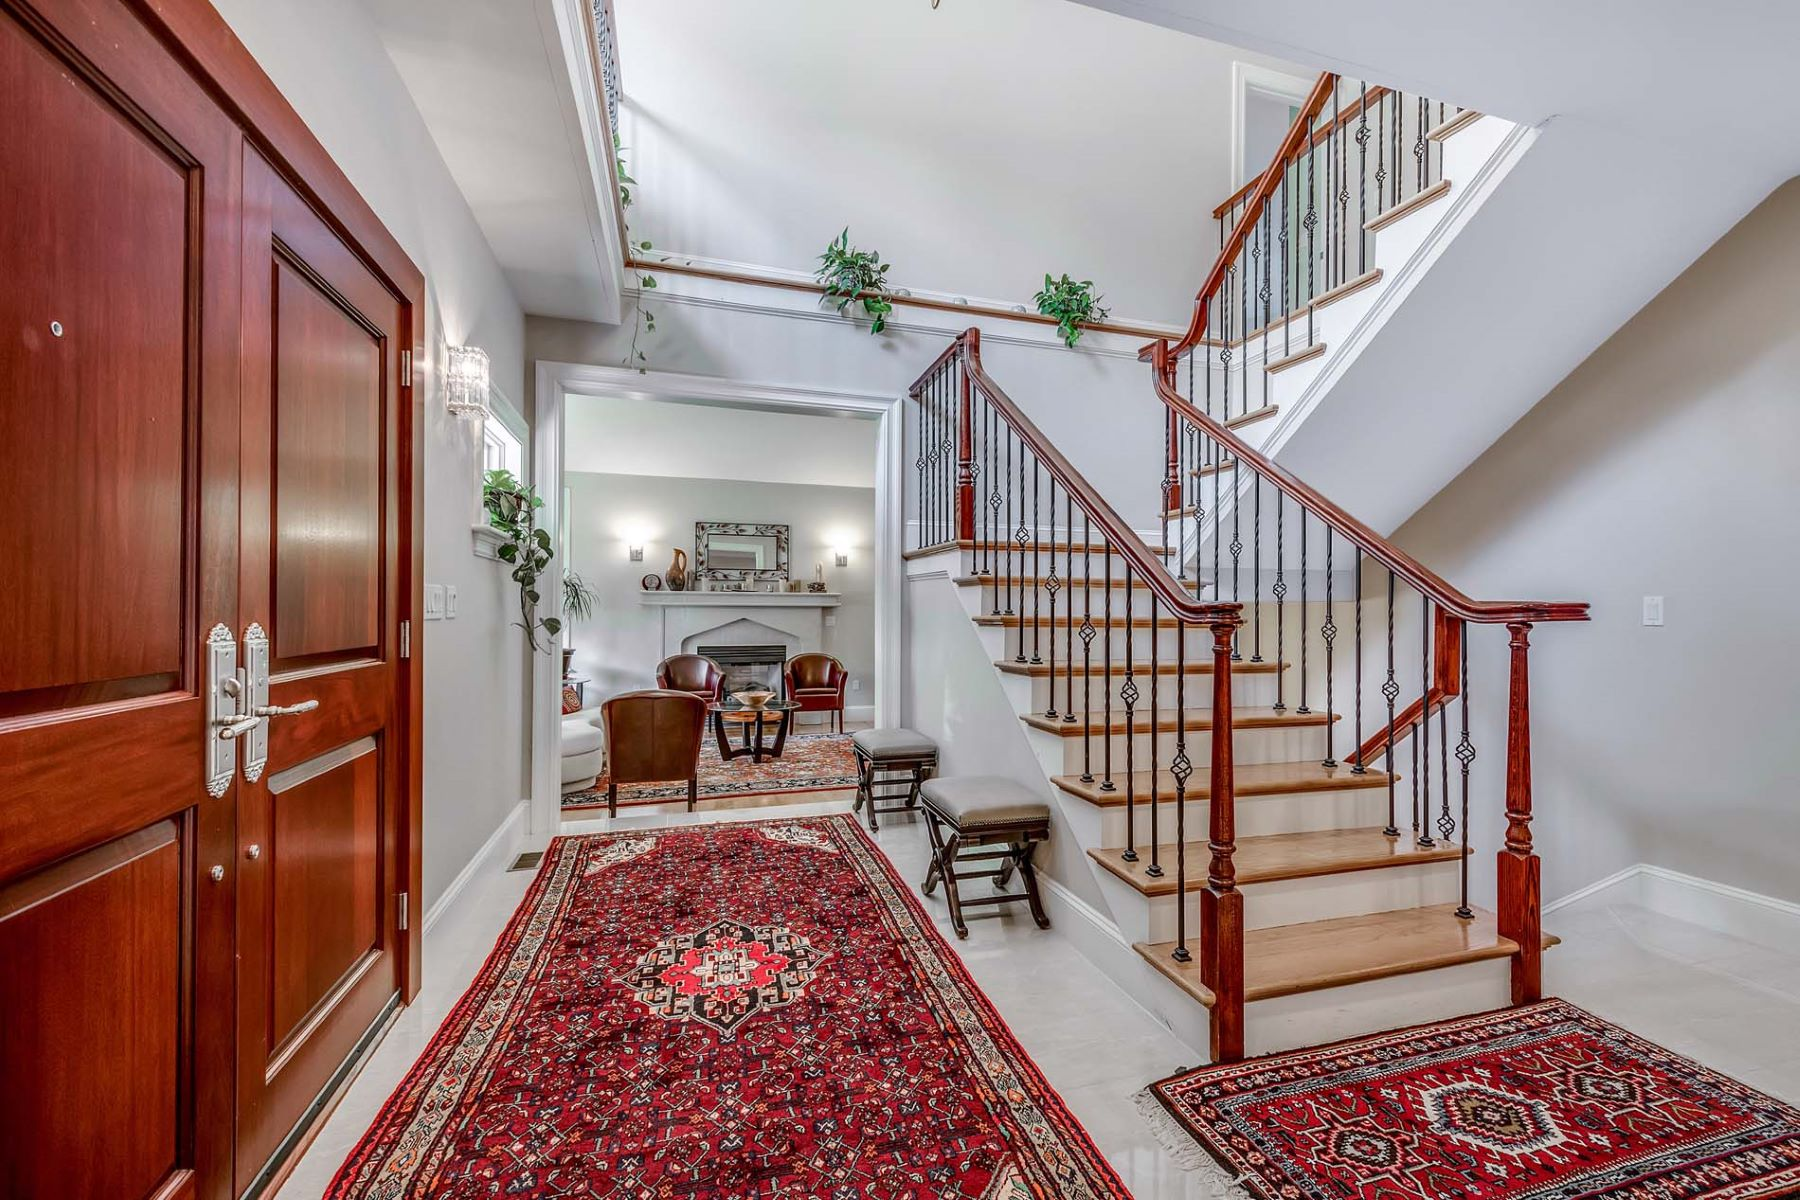 Additional photo for property listing at 36 Sky View Circle, Newton 36 Sky View Cir Newton, Massachusetts 02459 United States